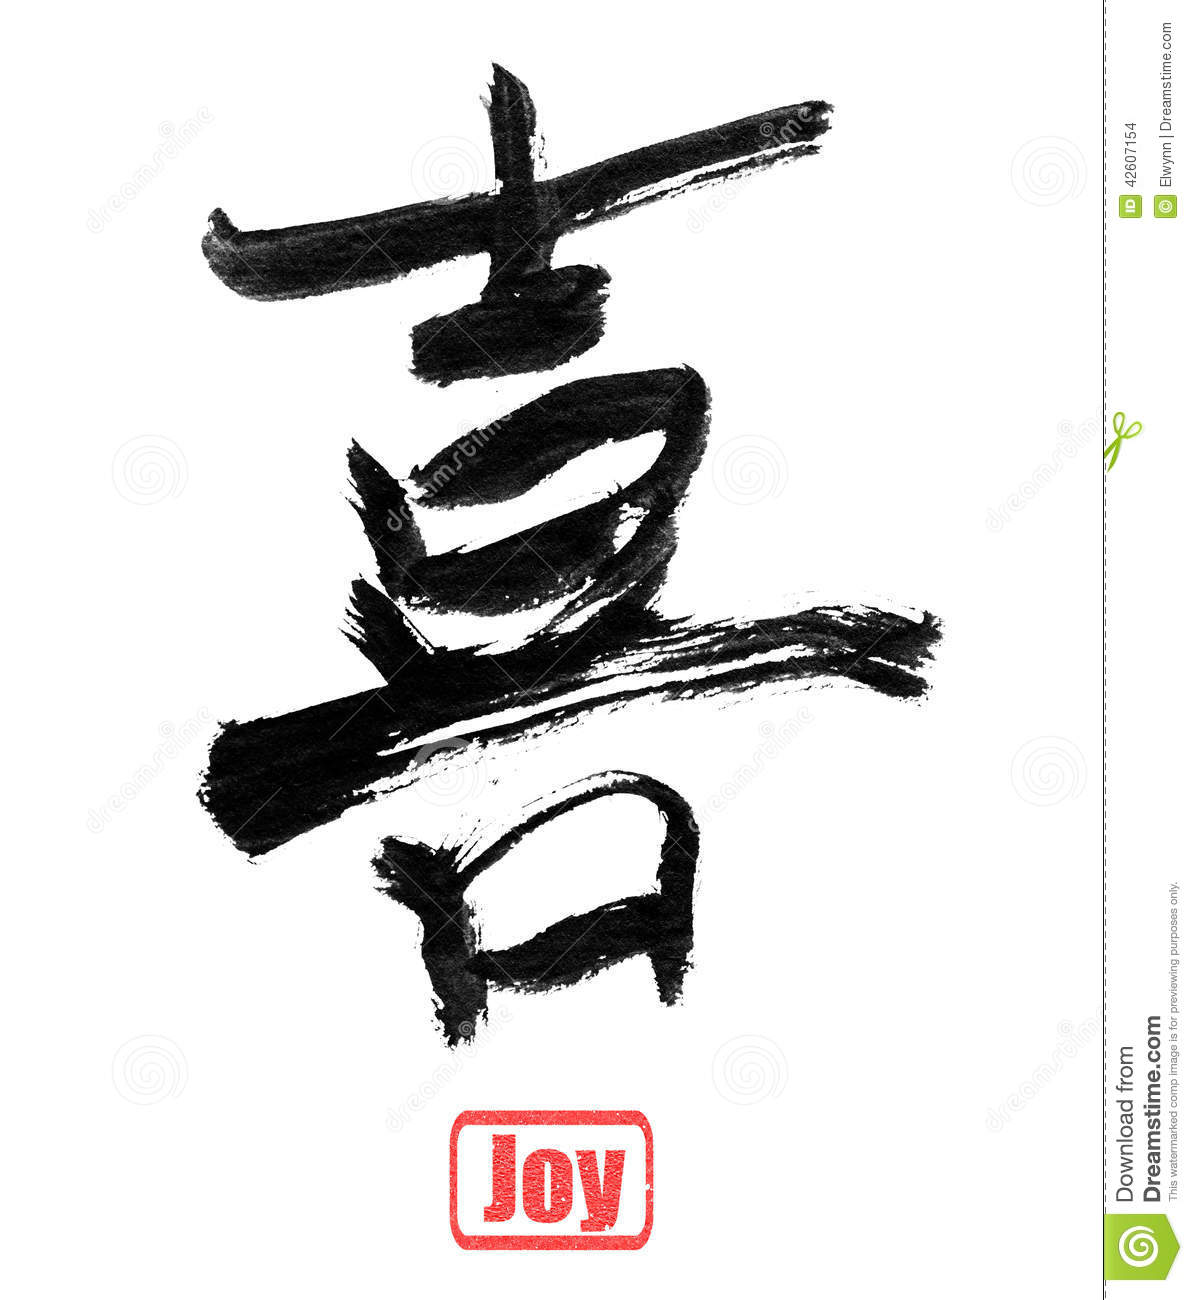 Calligraphy word joy stock illustration image